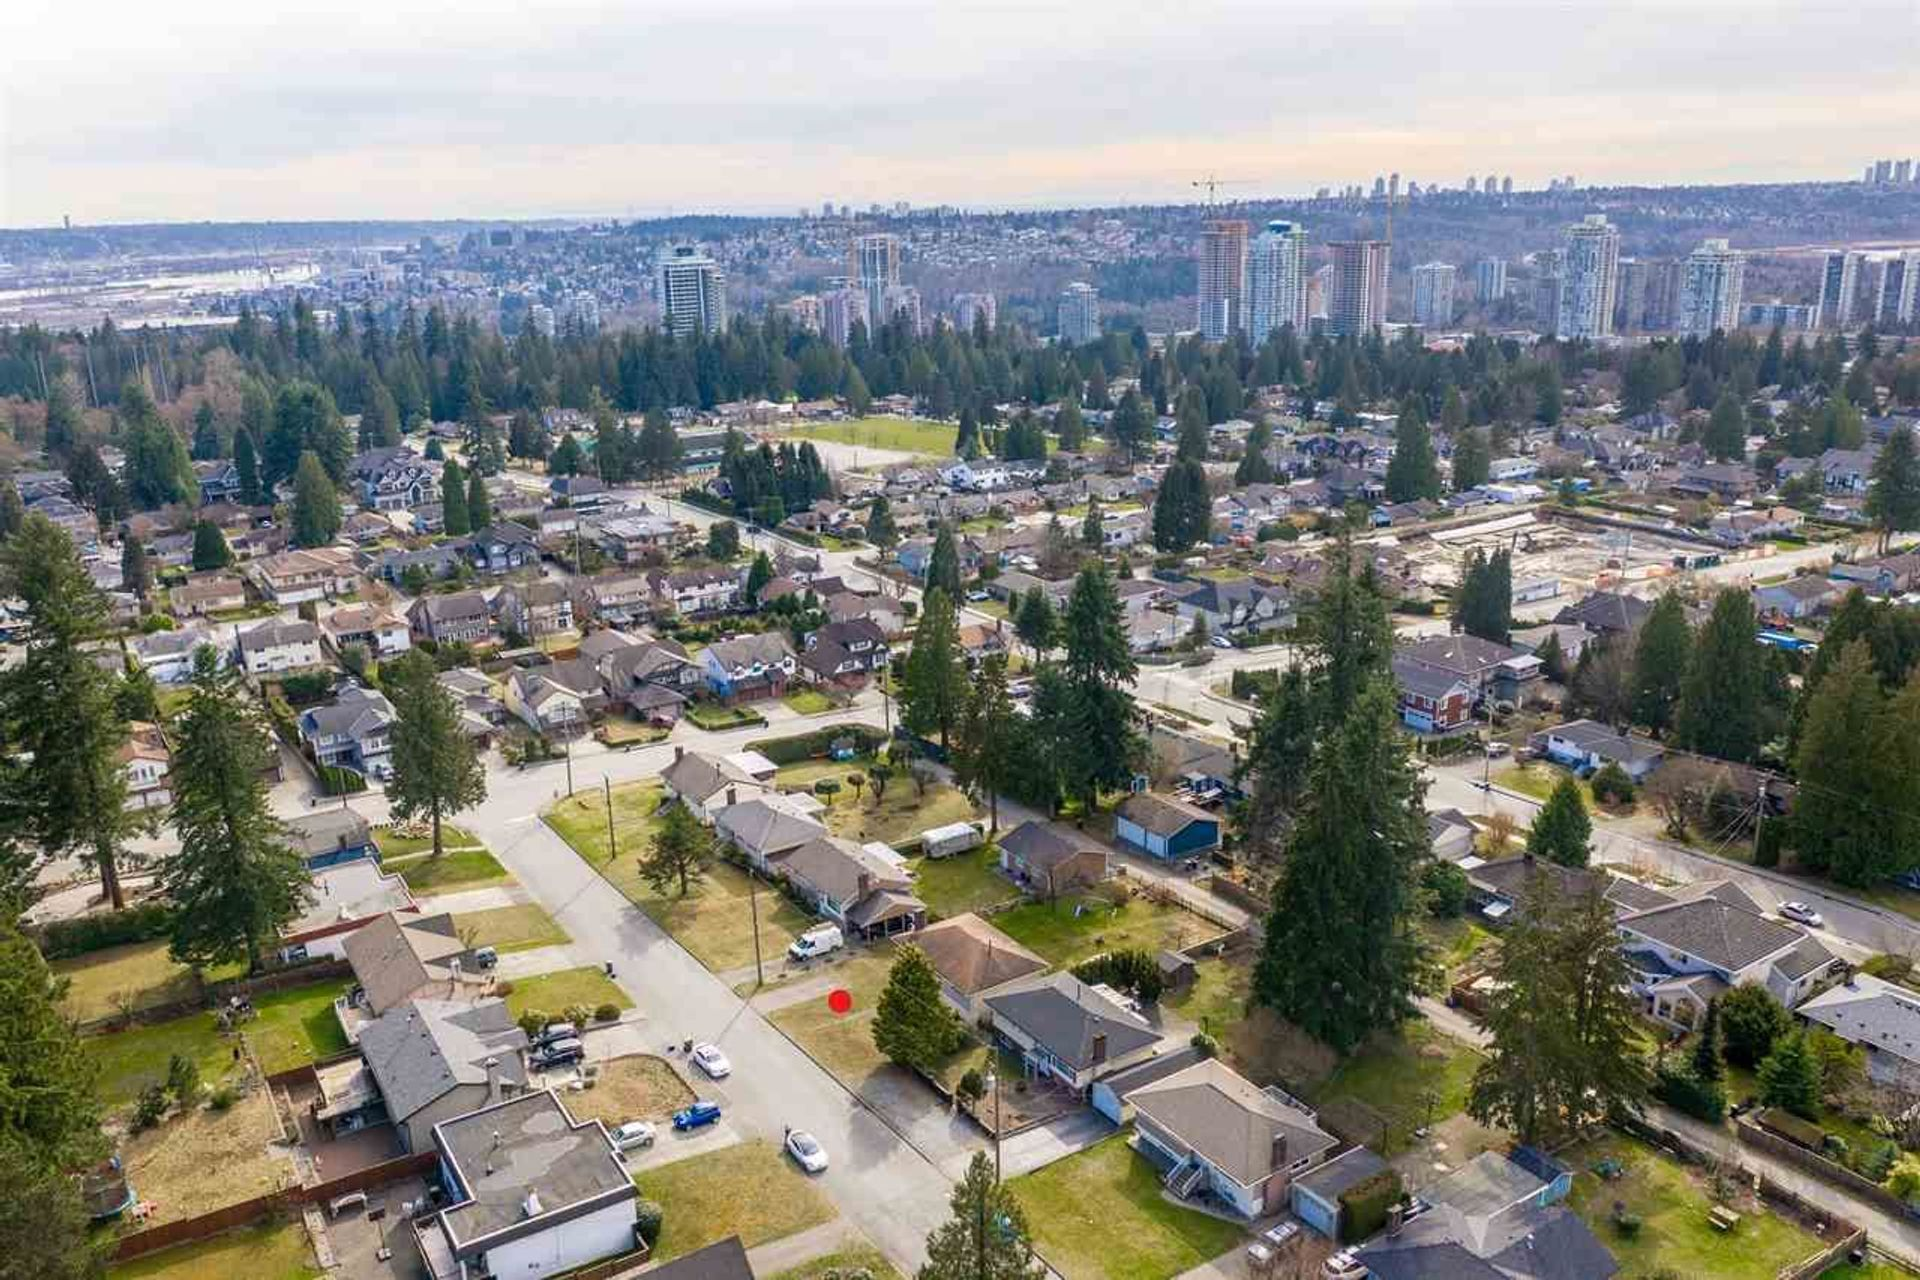 664-florence-street-coquitlam-west-coquitlam-09 at 664 Florence Street, Coquitlam West, Coquitlam